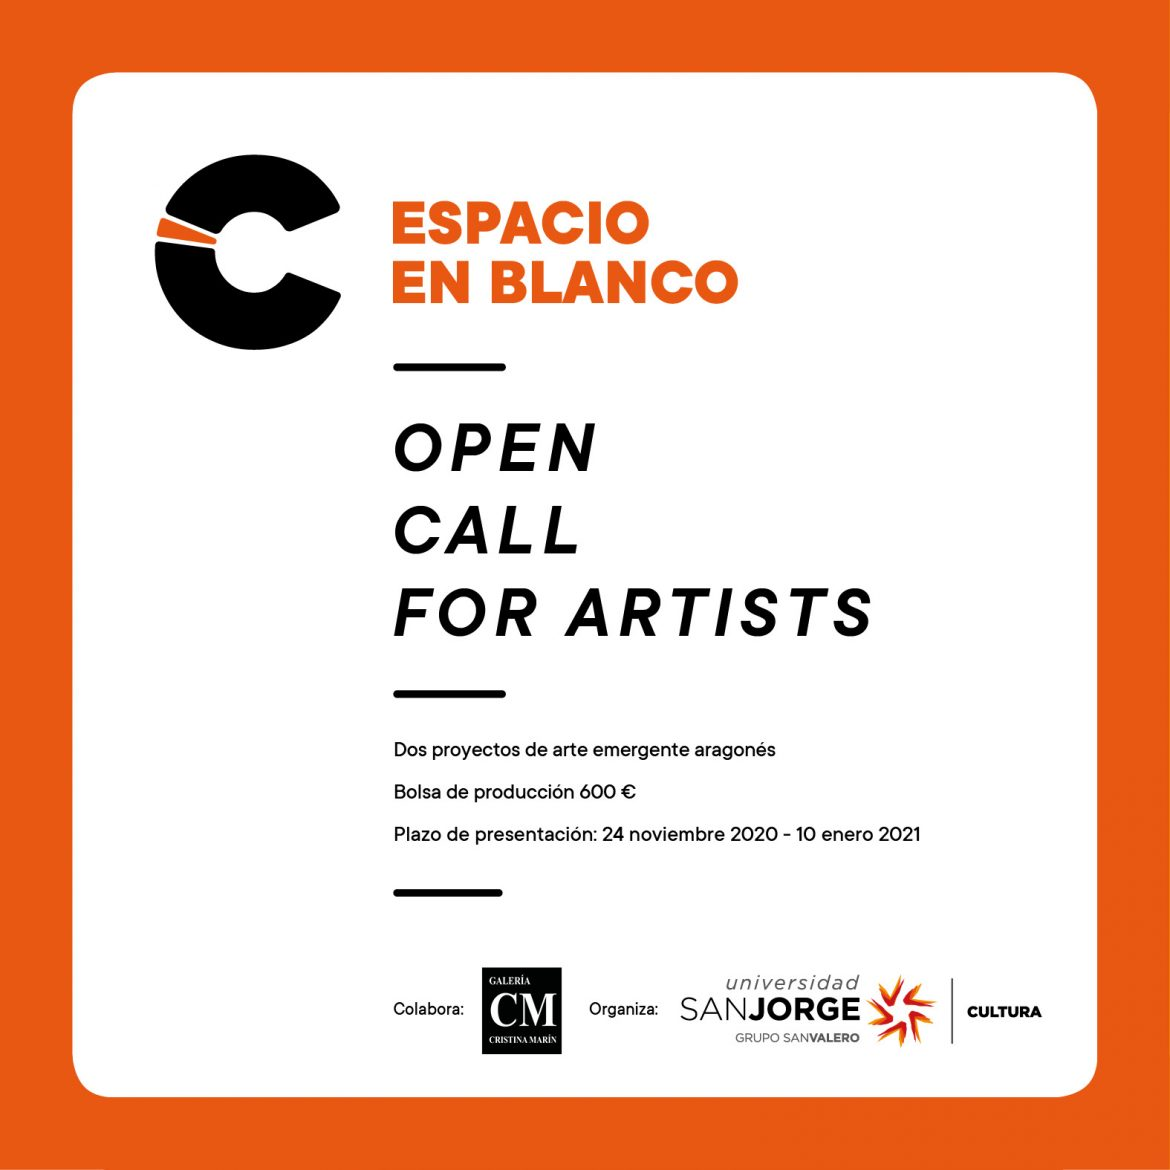 Call for artists Espacio en blanco